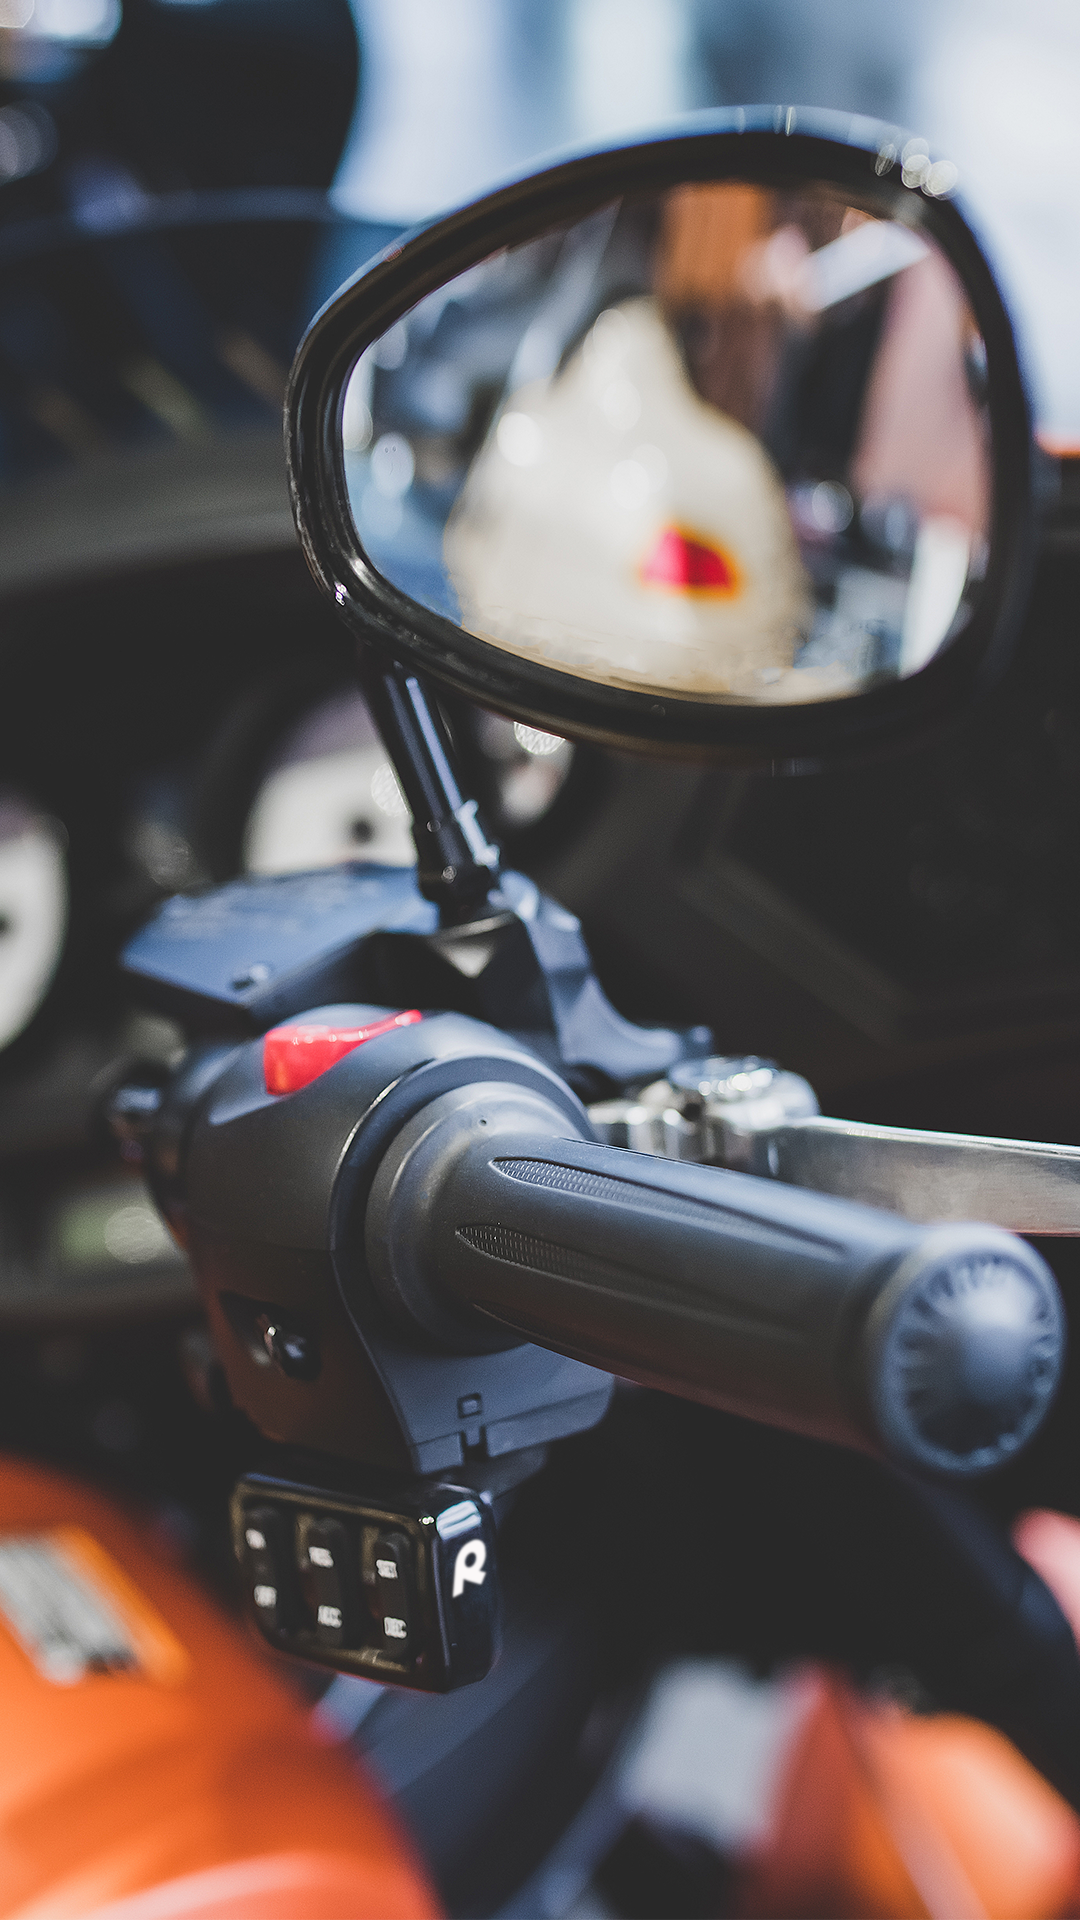 Why S It Better To Buy A Used Motorcycle Instead Of A New One